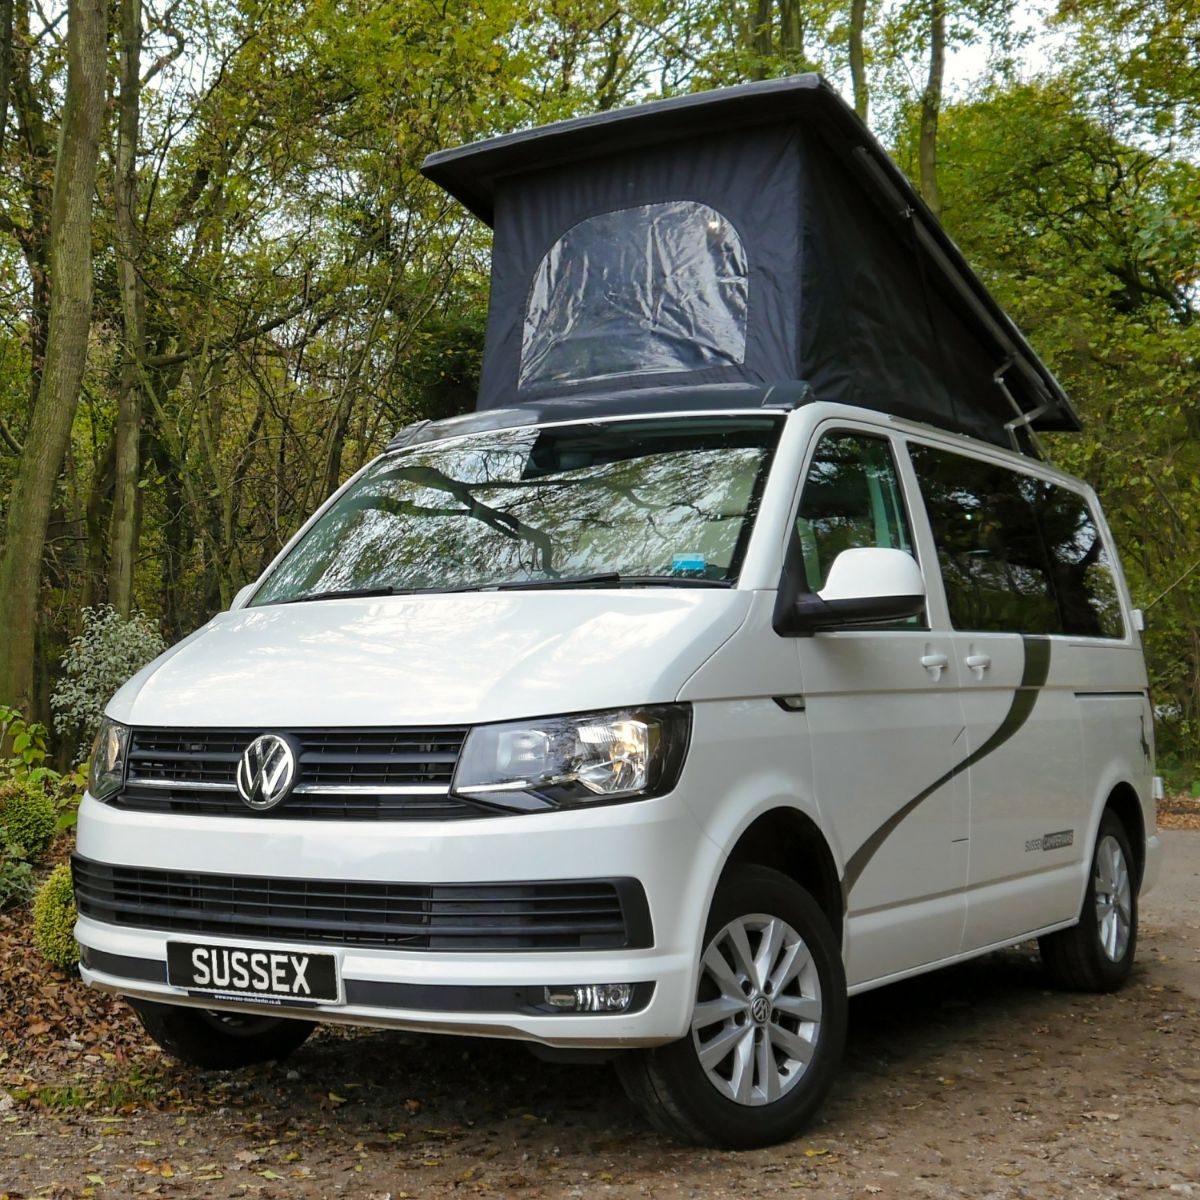 VW_Caledonia_from_Sussex_Campervans.jpg